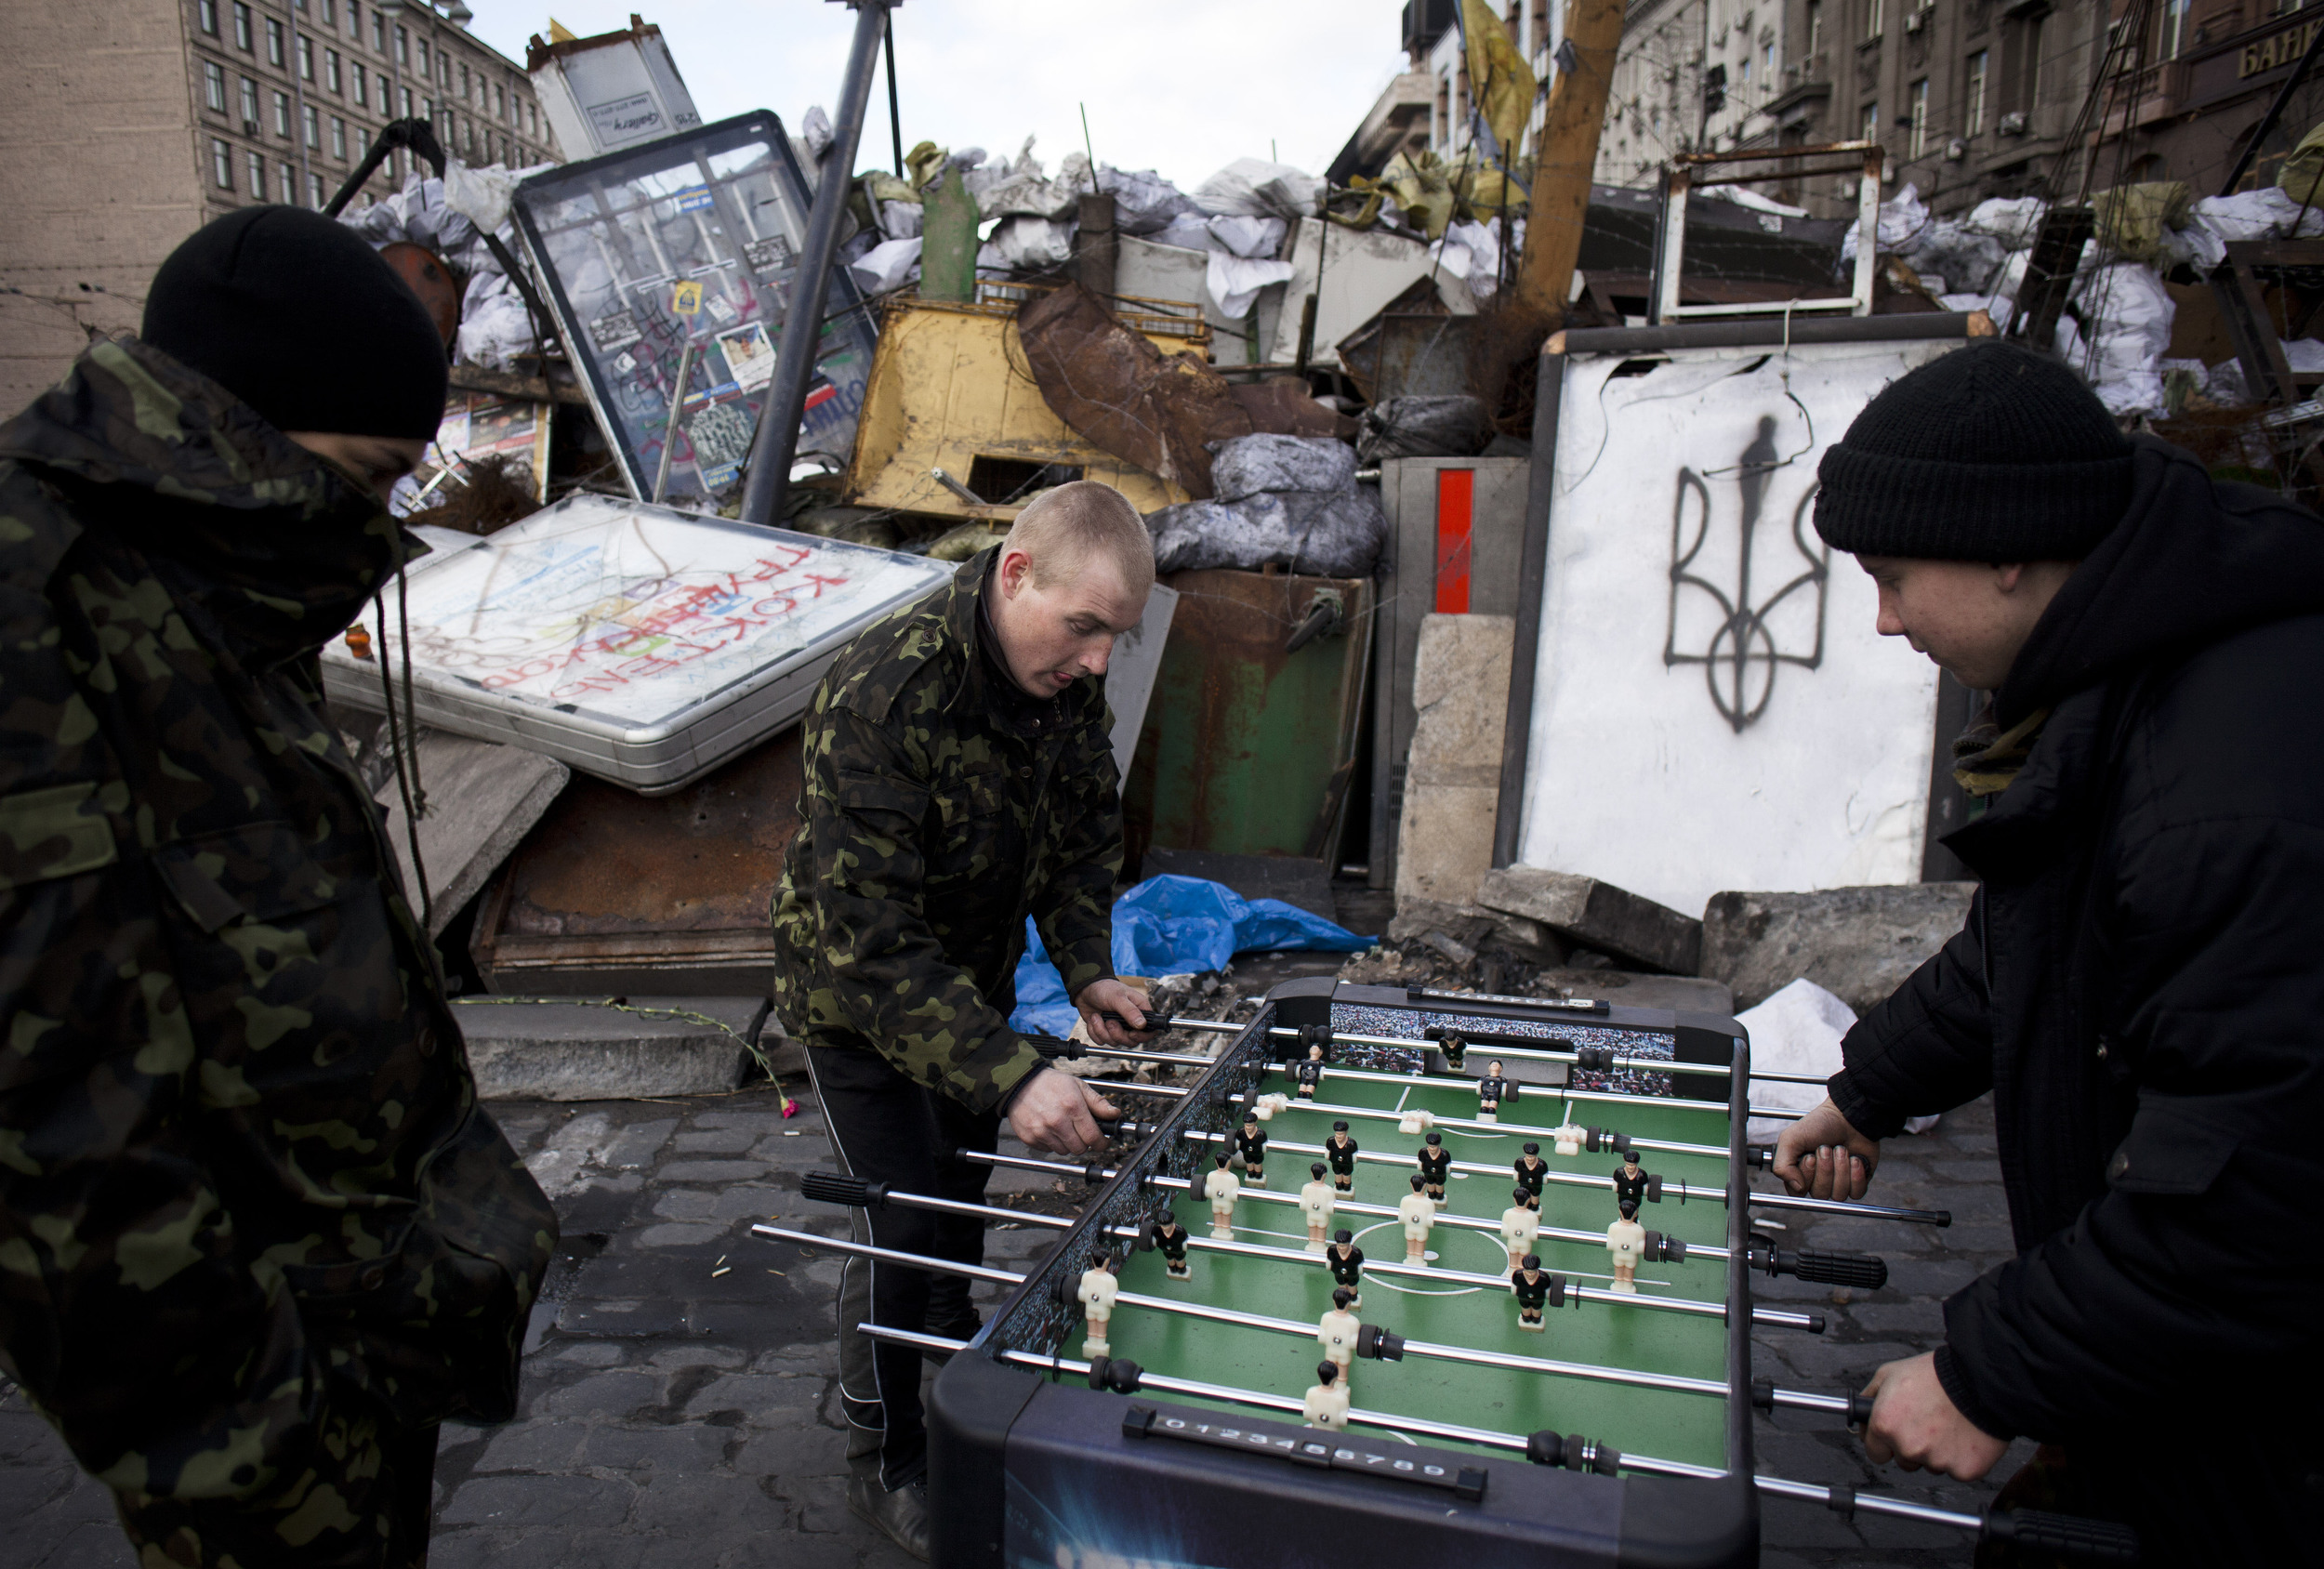 Youths, who are members of a self defense volunteer group, play table football next to a barricade on a road leading to Kiev's Independence Square, Ukraine, Sunday, March 16, 2014. Residents of Ukraine's Crimea region are voting on Sunday in a contentious referendum on whether to split off and seek annexation by Russia. (AP Photo/David Azia)